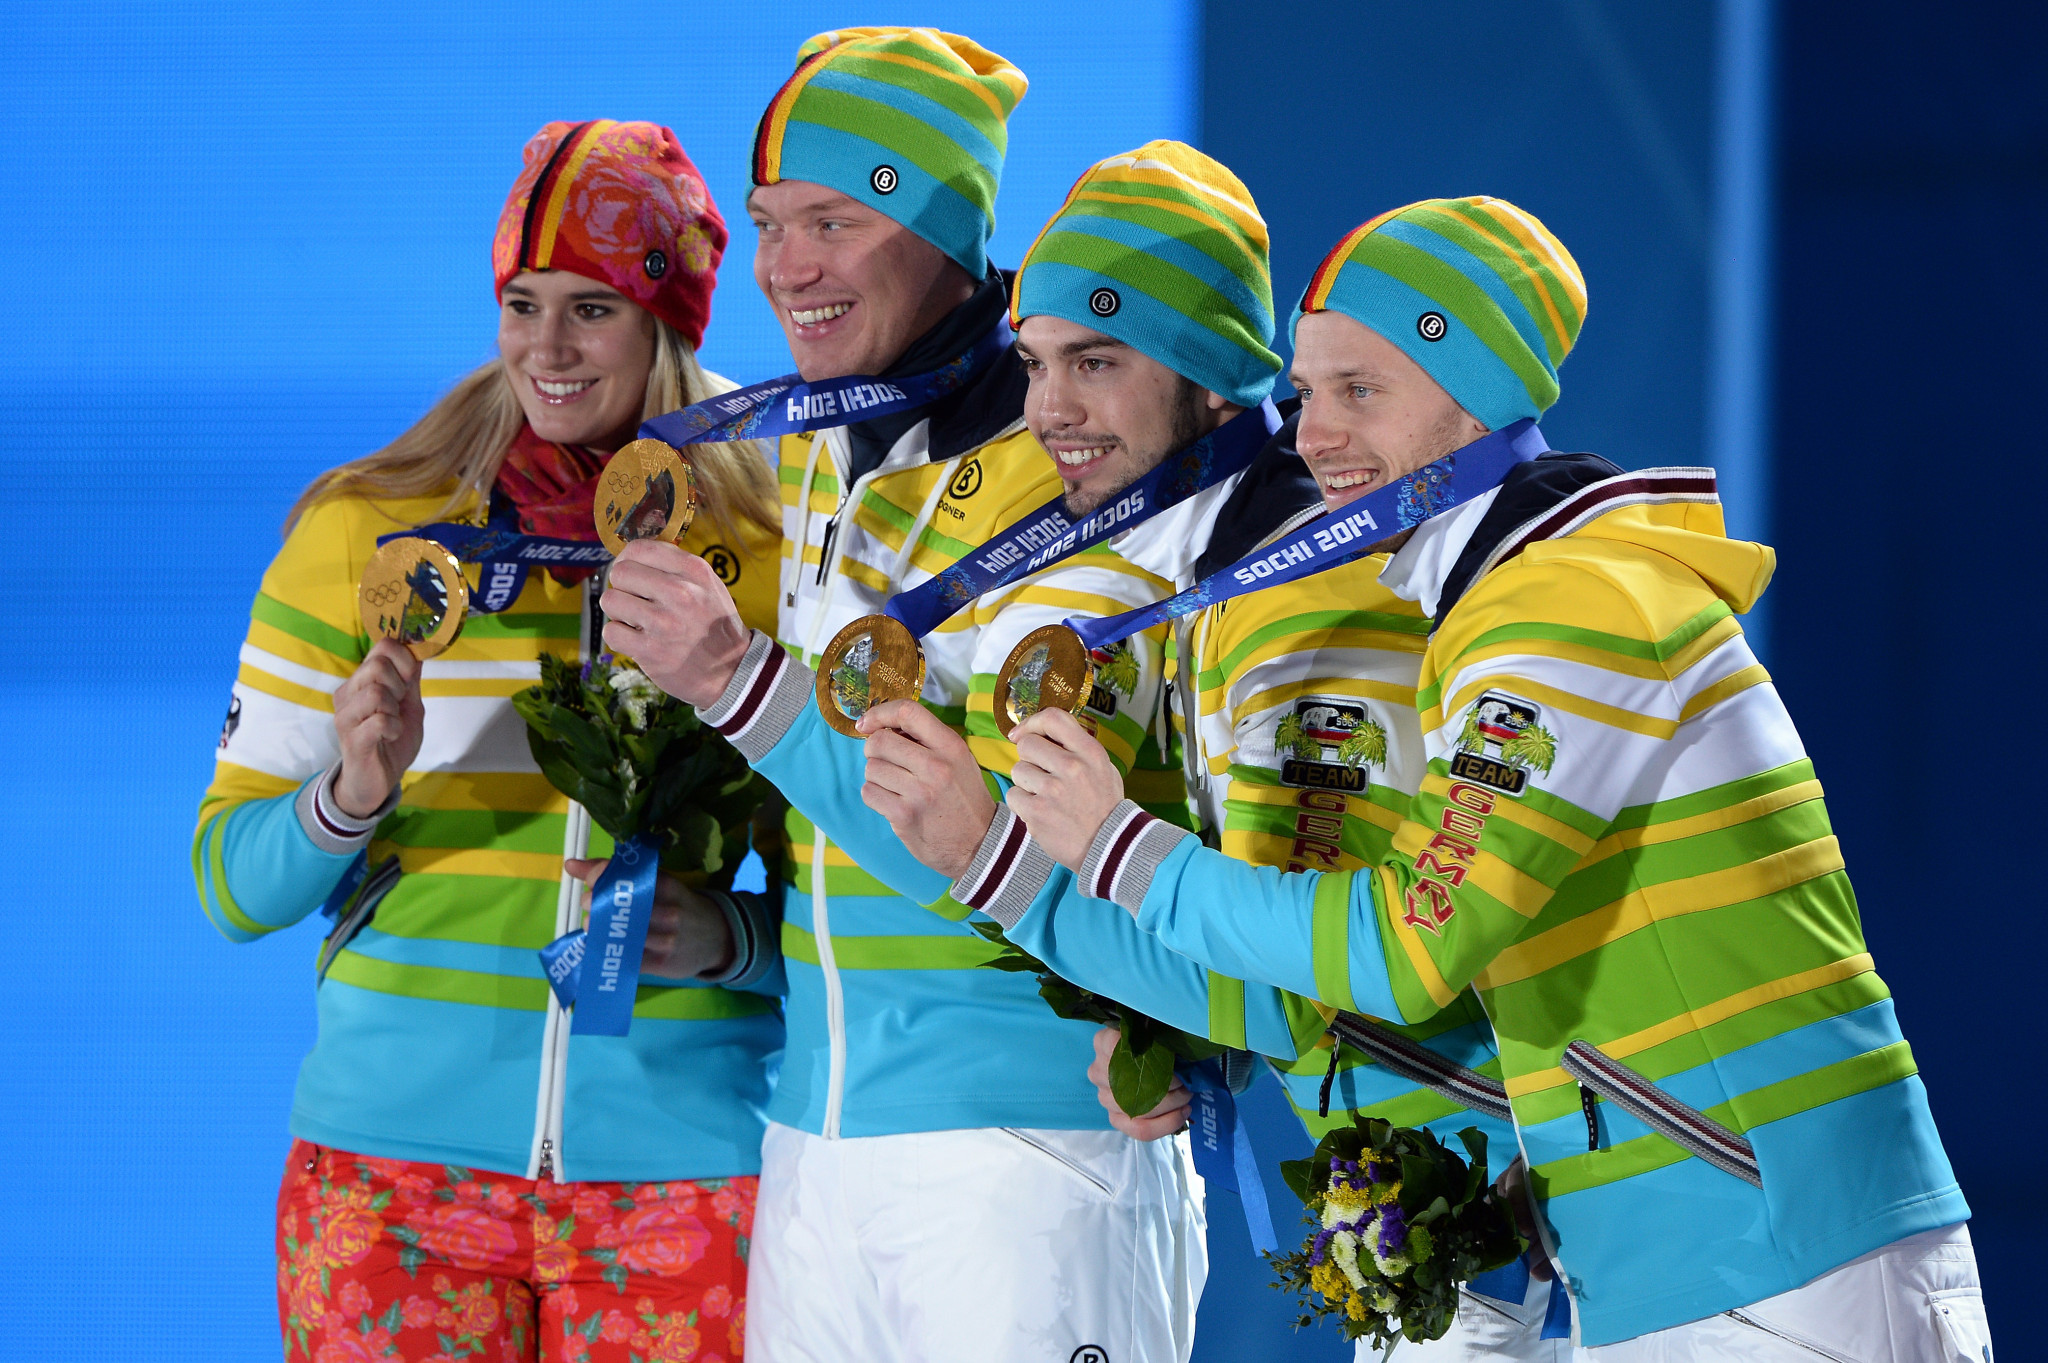 Natalie Geisenberger, Felix Loch, Tobias Wendl, and Tobias Arlt, left to right, have all been selected for Pyeongchang 2018 ©Getty Images